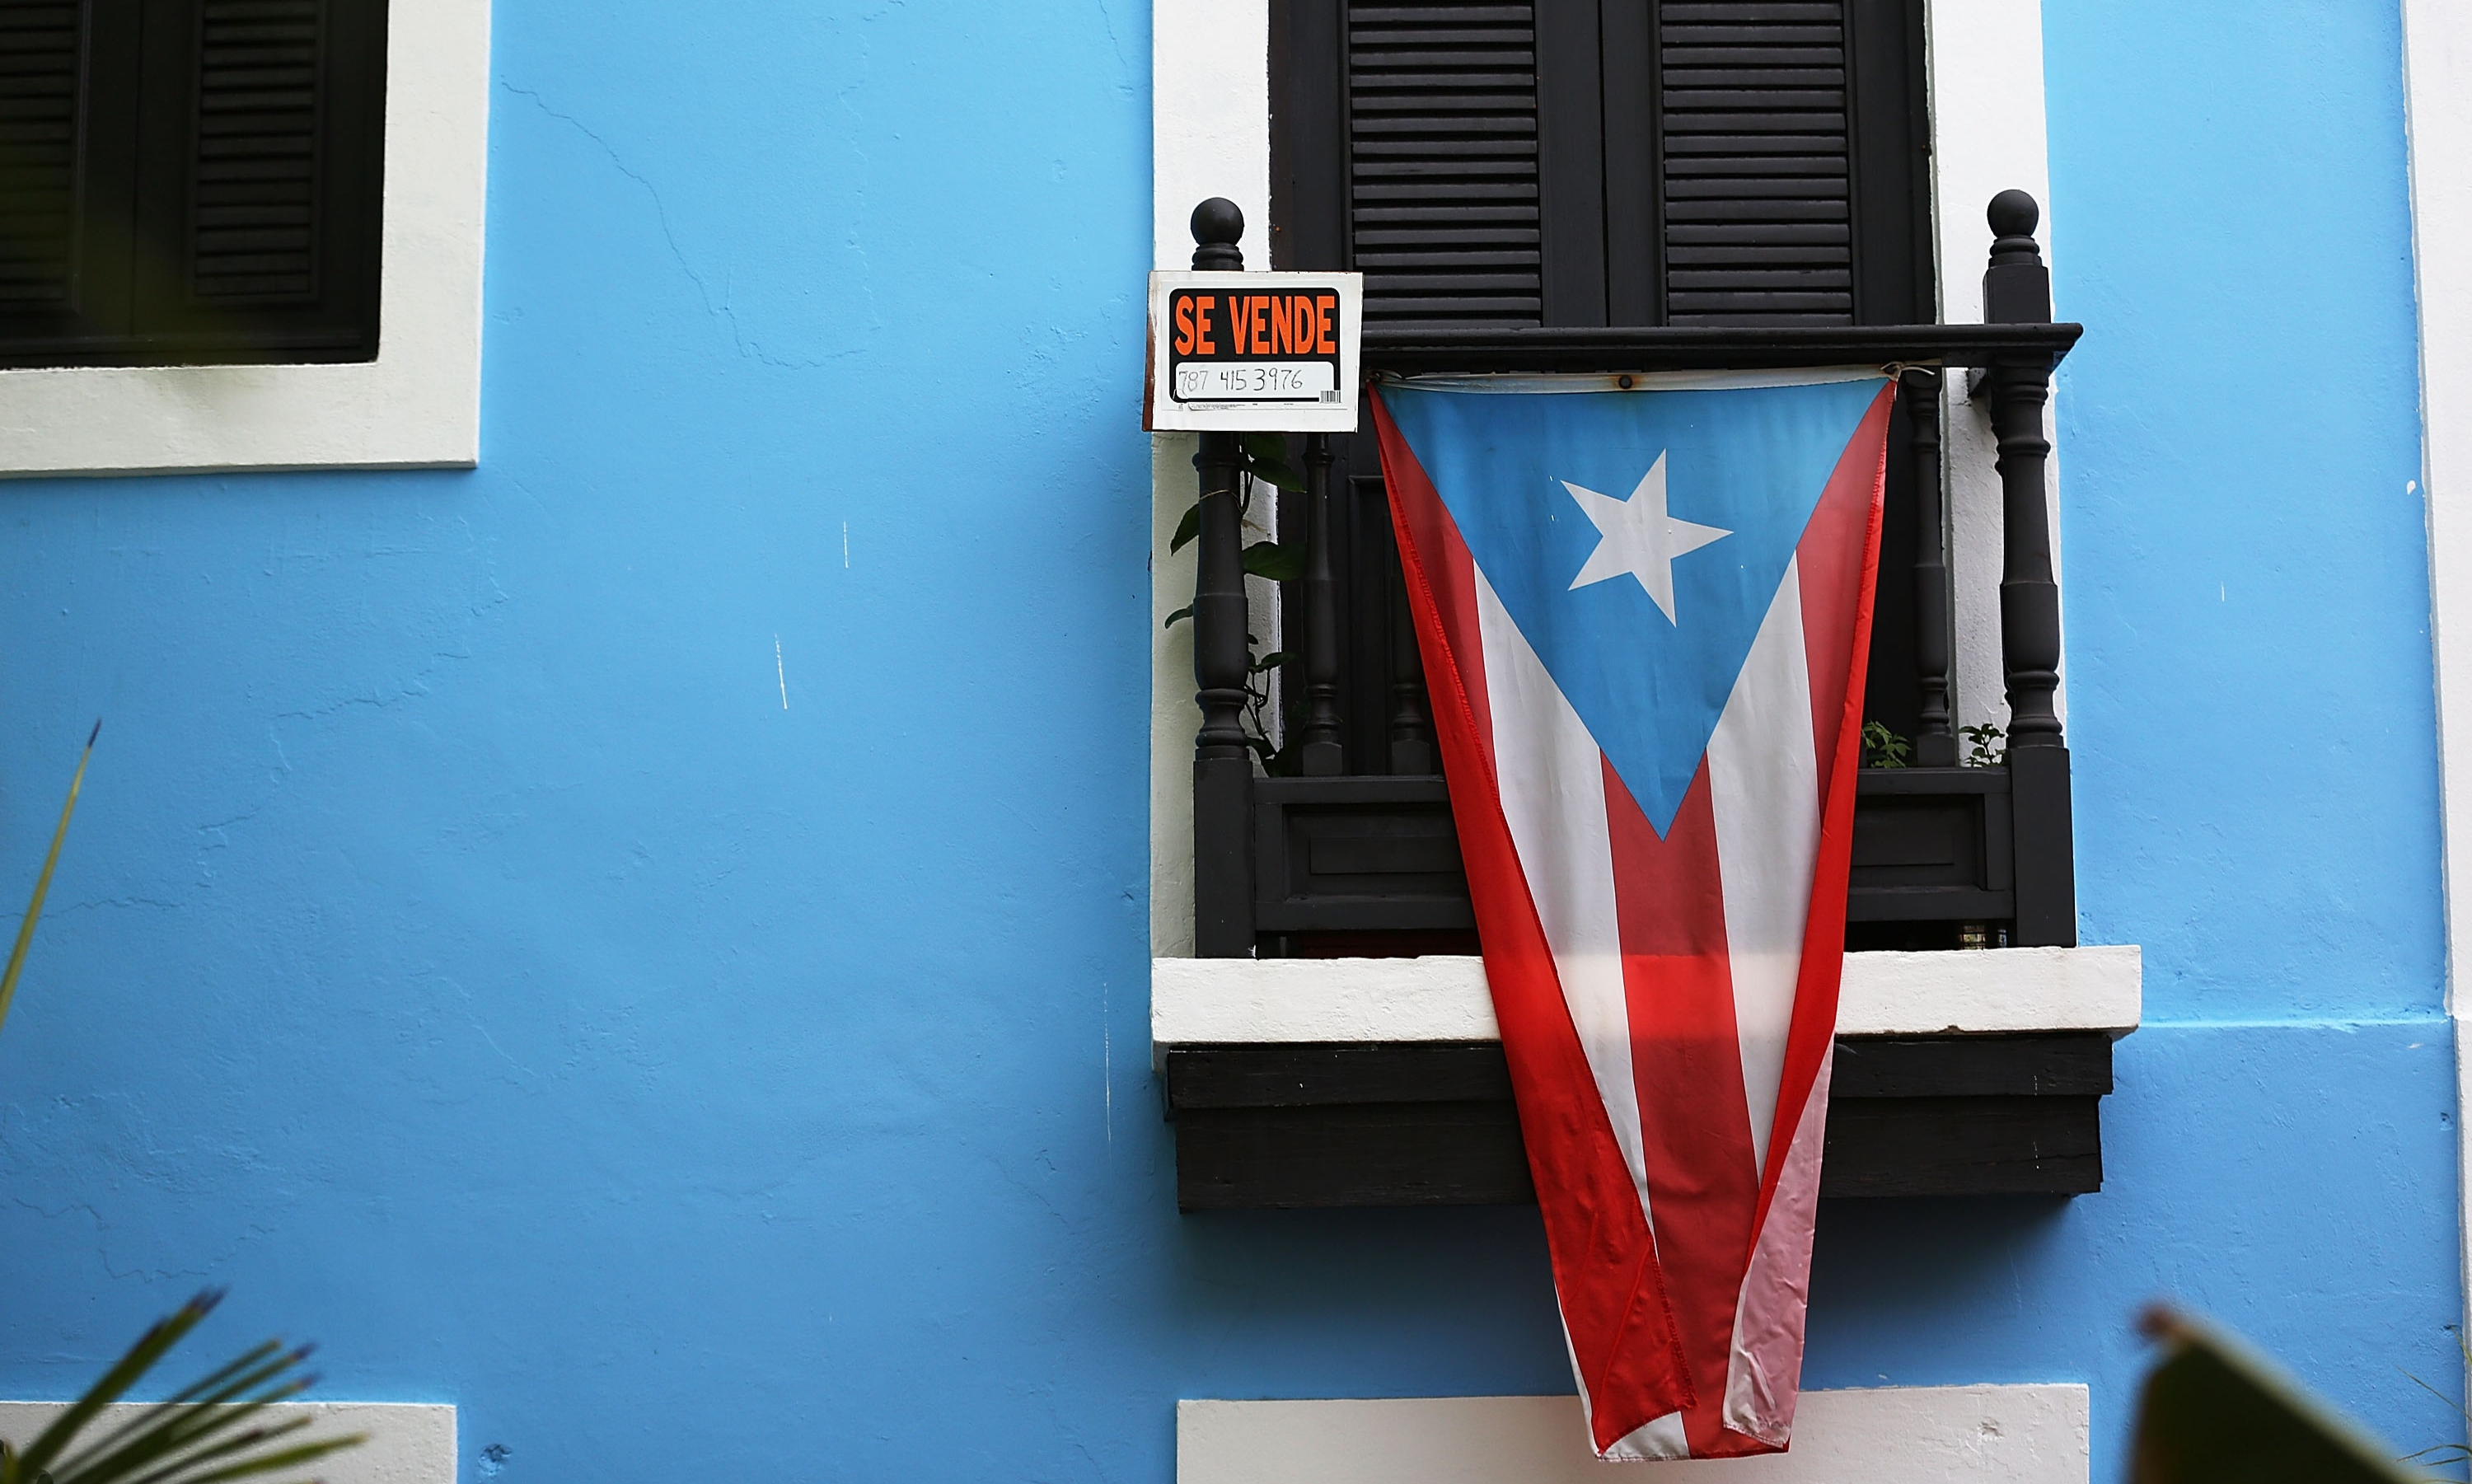 Puerto Rico's Debt Crisis Could Drastically Impact U.S. Mutual Funds